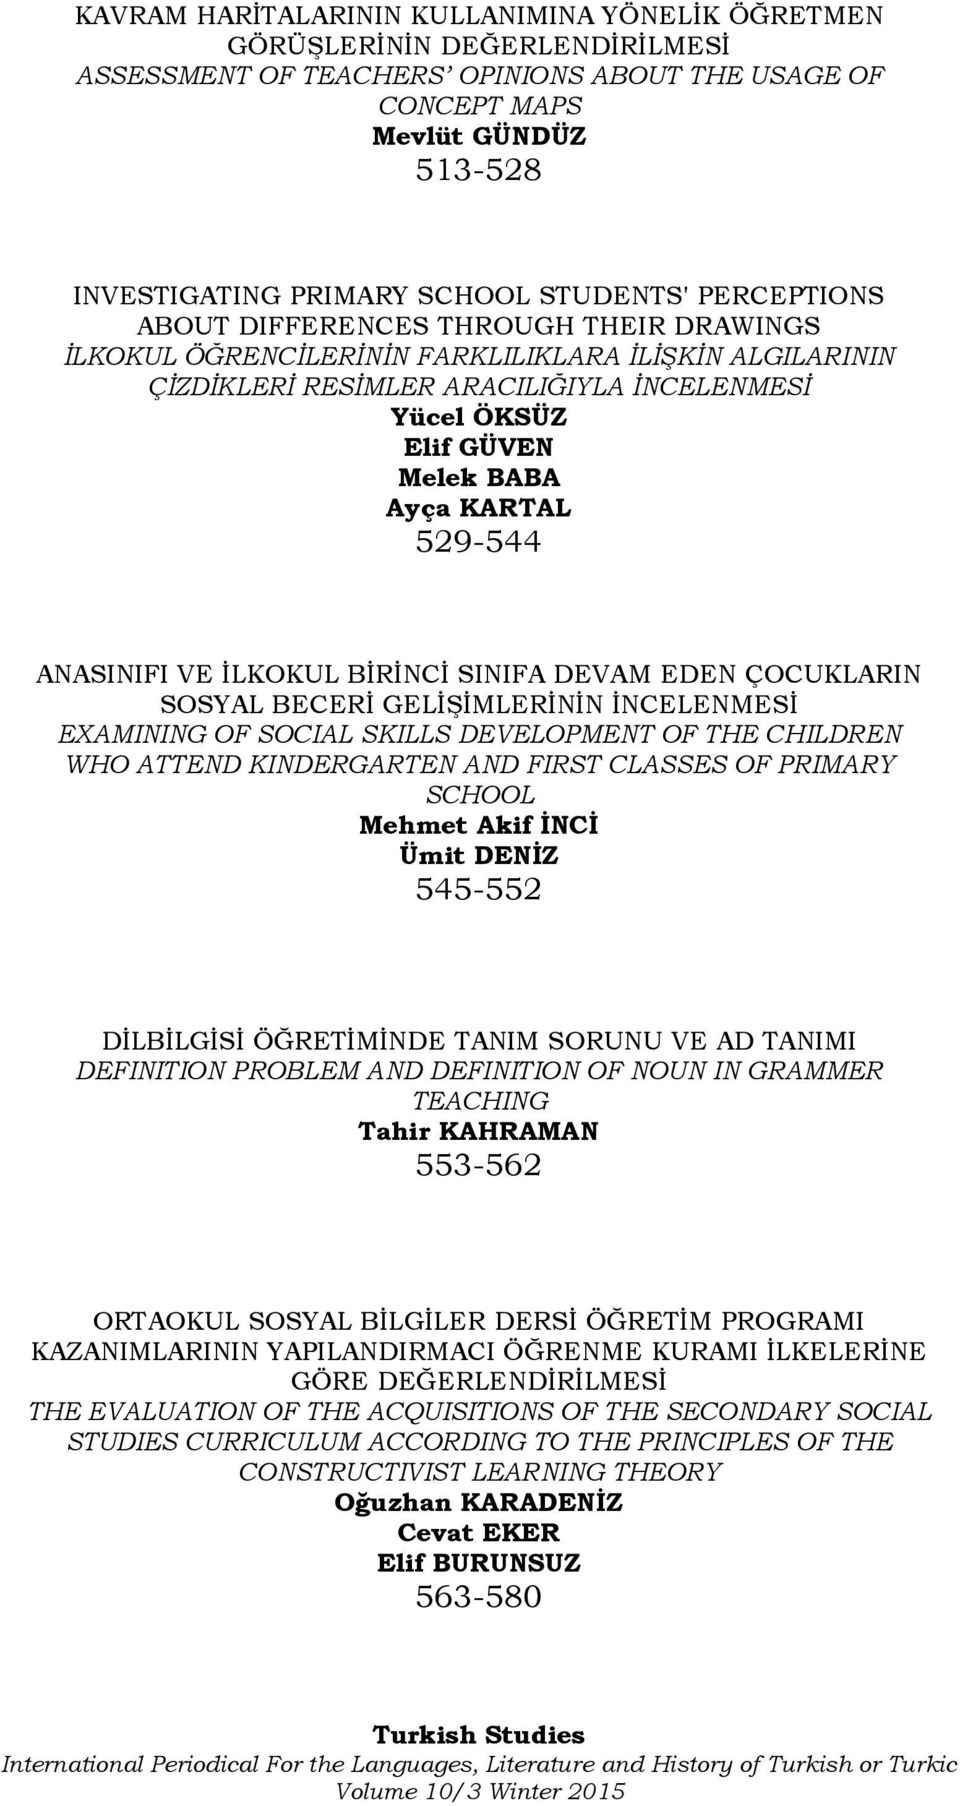 Ayça KARTAL 529-544 ANASINIFI VE İLKOKUL BİRİNCİ SINIFA DEVAM EDEN ÇOCUKLARIN SOSYAL BECERİ GELİŞİMLERİNİN İNCELENMESİ EXAMINING OF SOCIAL SKILLS DEVELOPMENT OF THE CHILDREN WHO ATTEND KINDERGARTEN